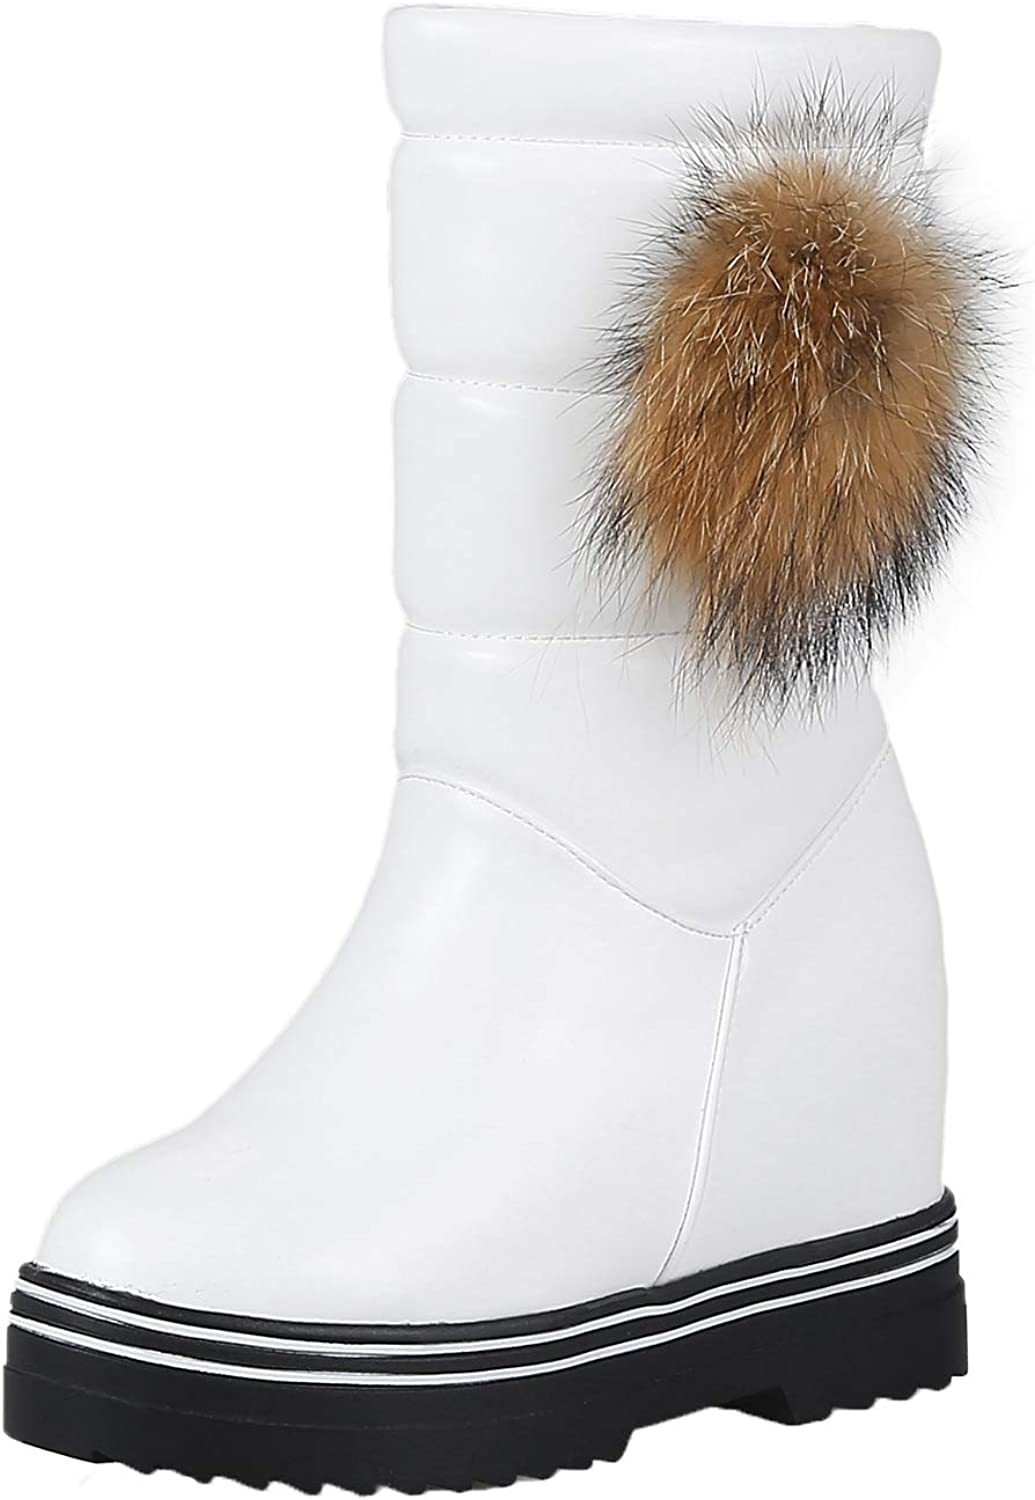 Vitalo Womens Pom Pom Wedge Mid Calf Snow Boots with Fur Warm Winter shoes